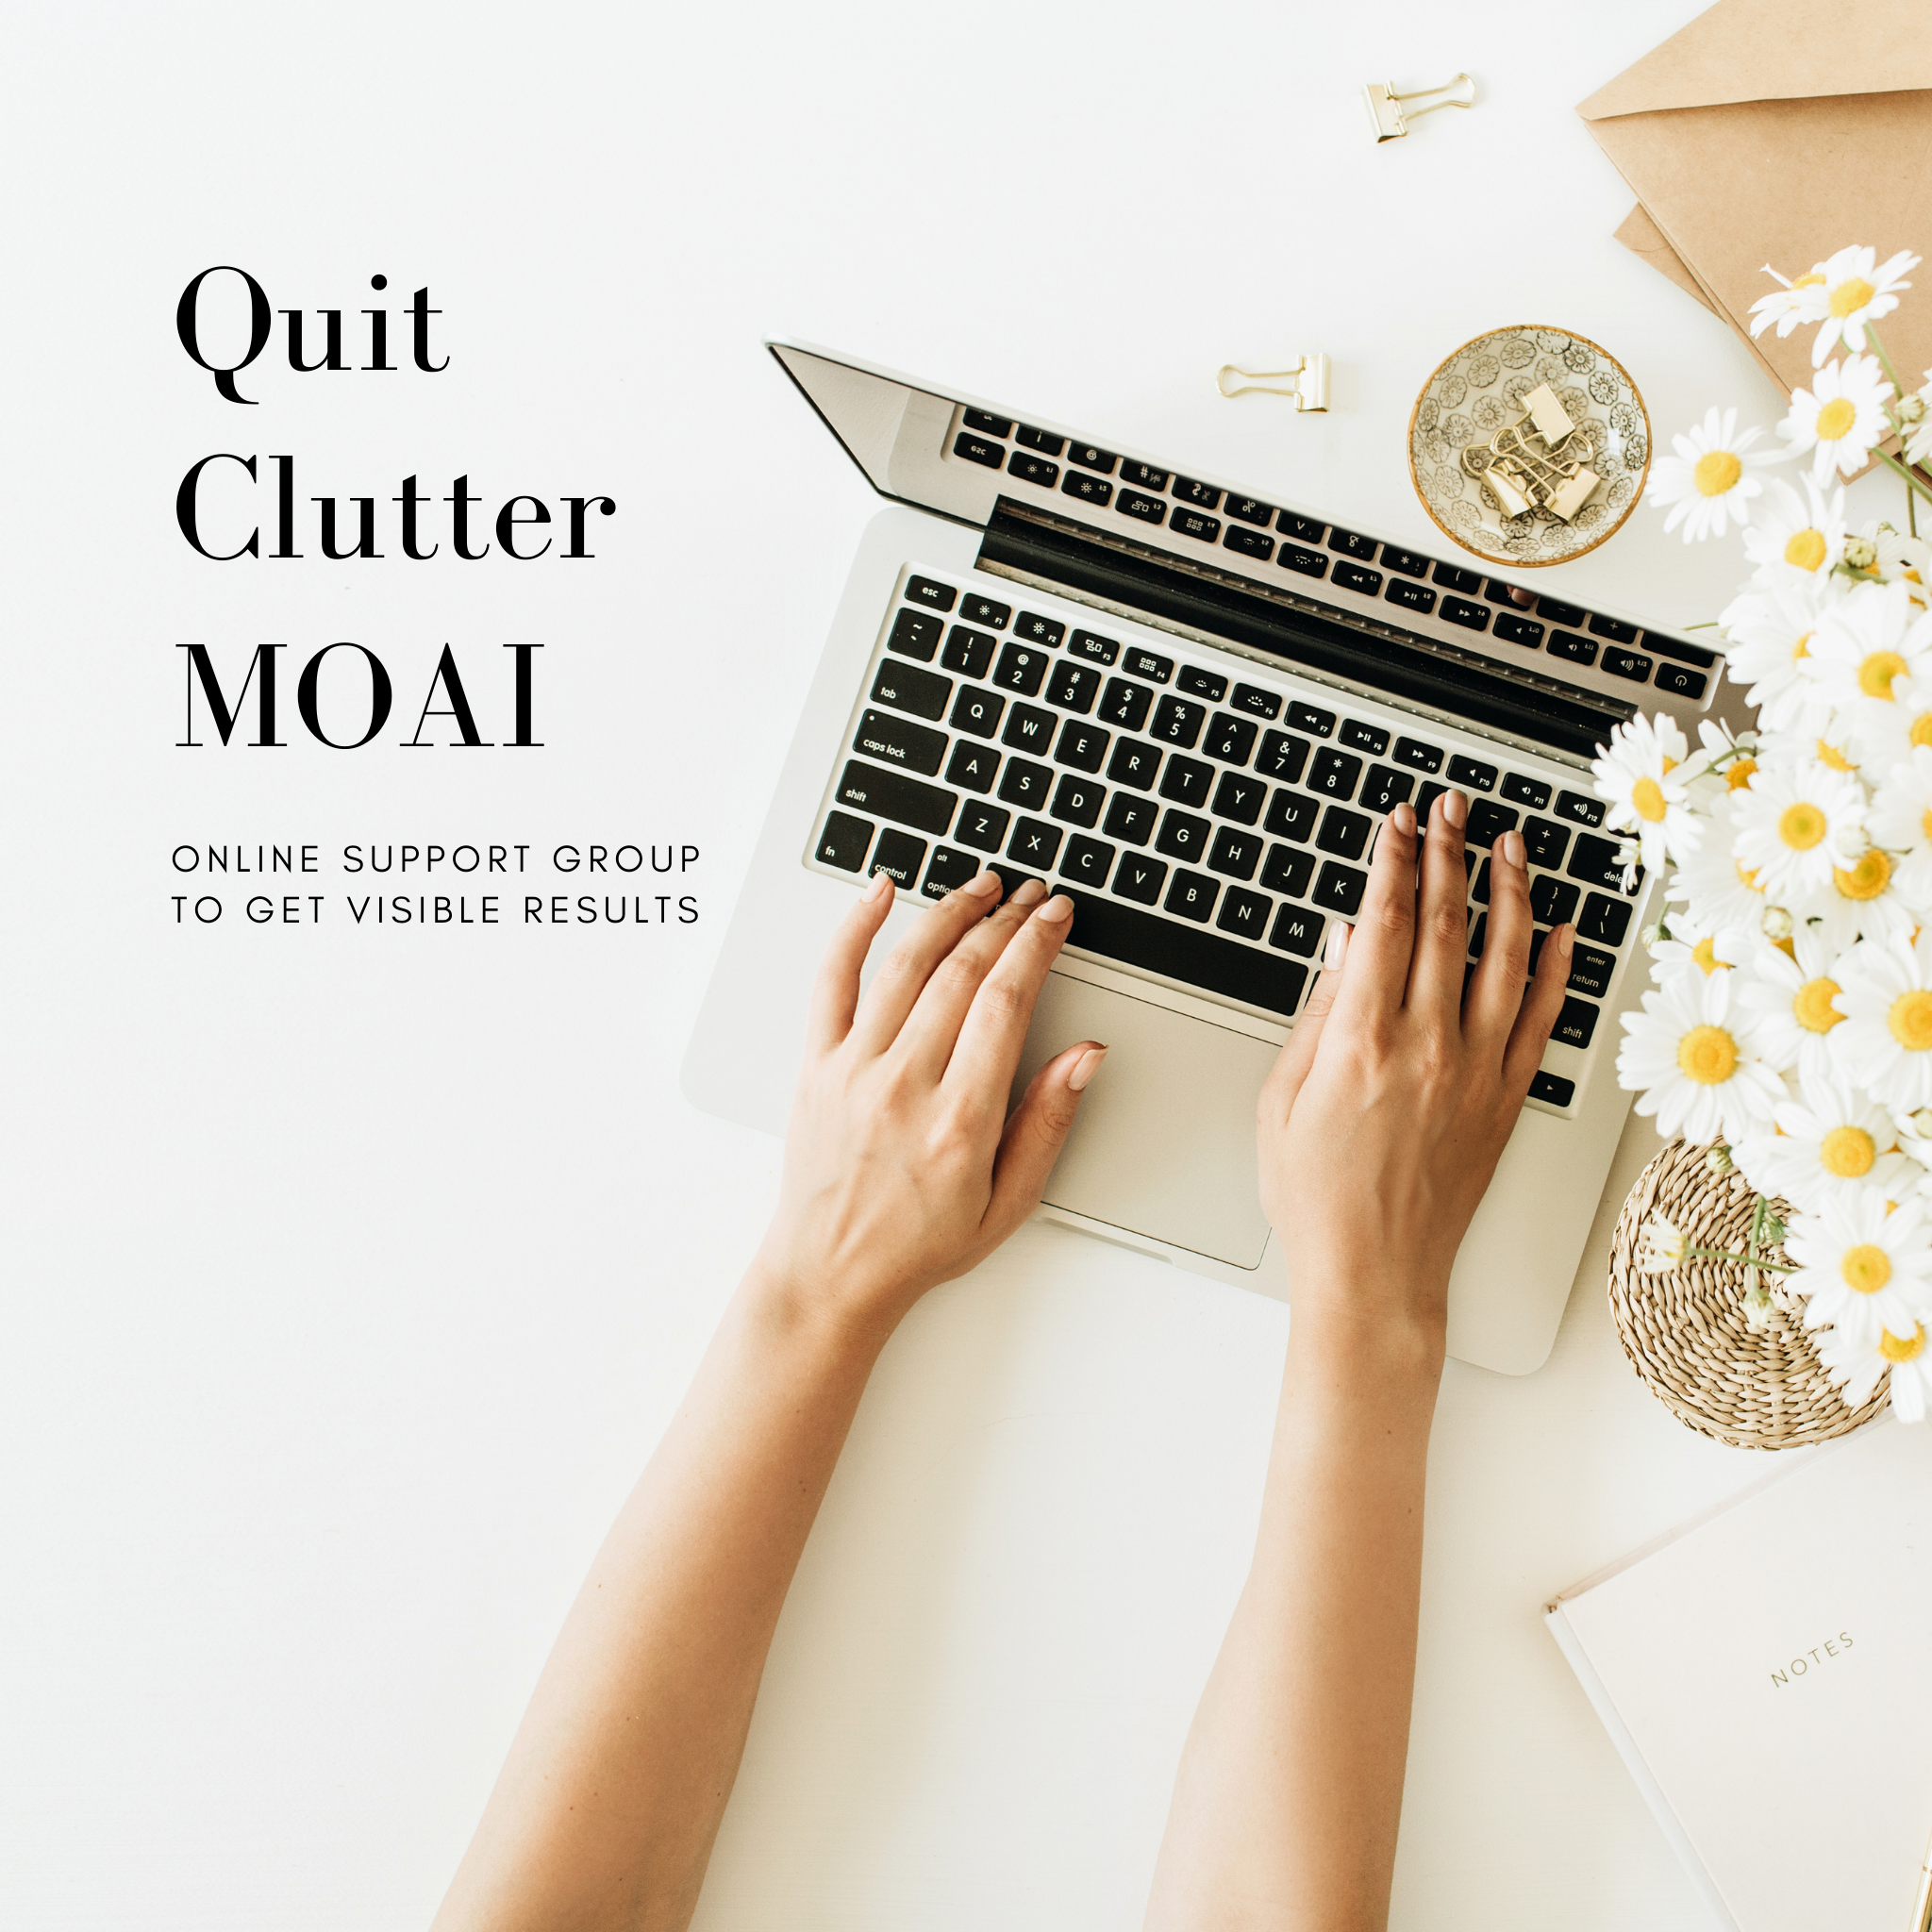 Quit Clutter Moai - May 2021